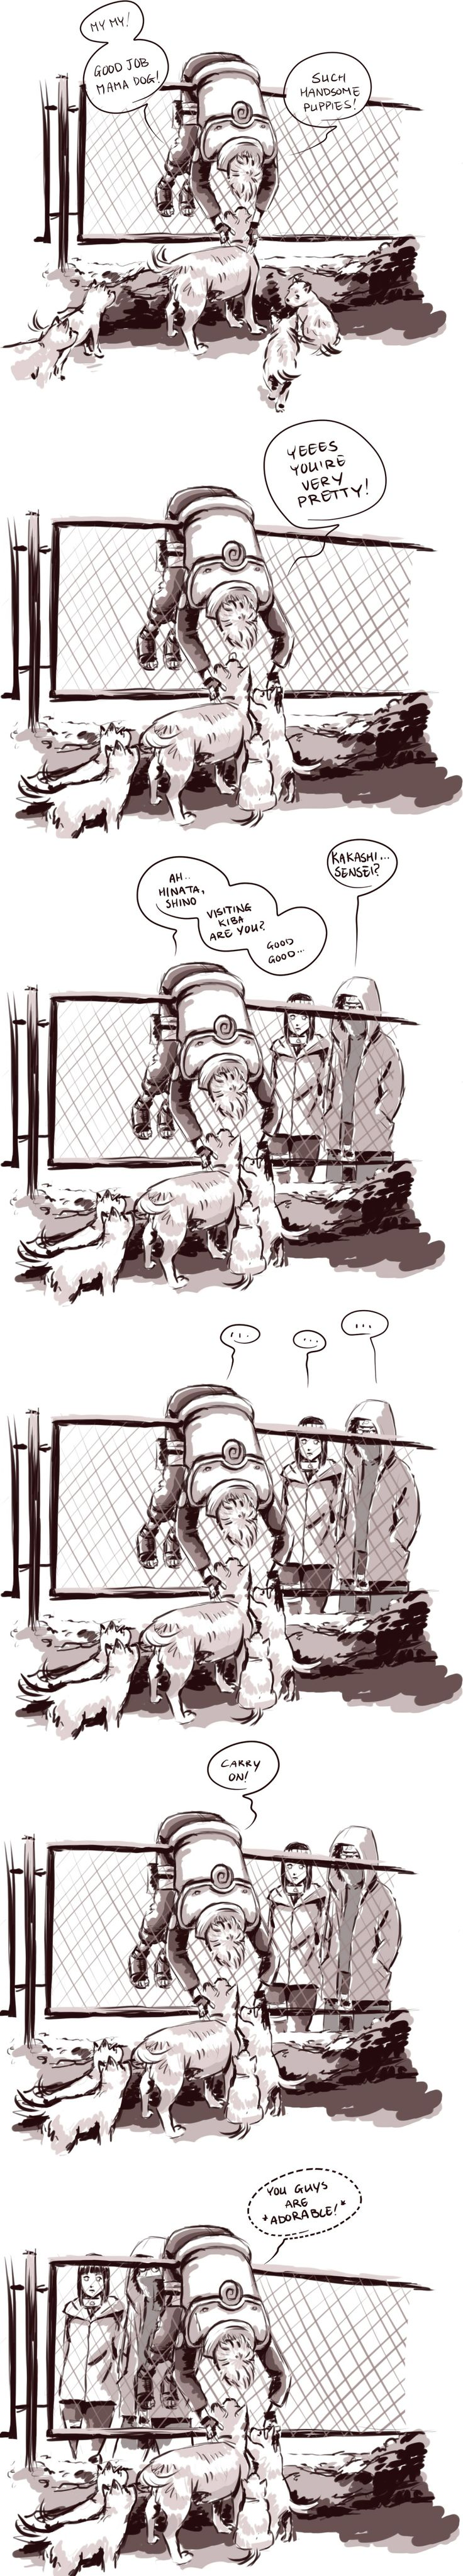 Kakashi and dogs